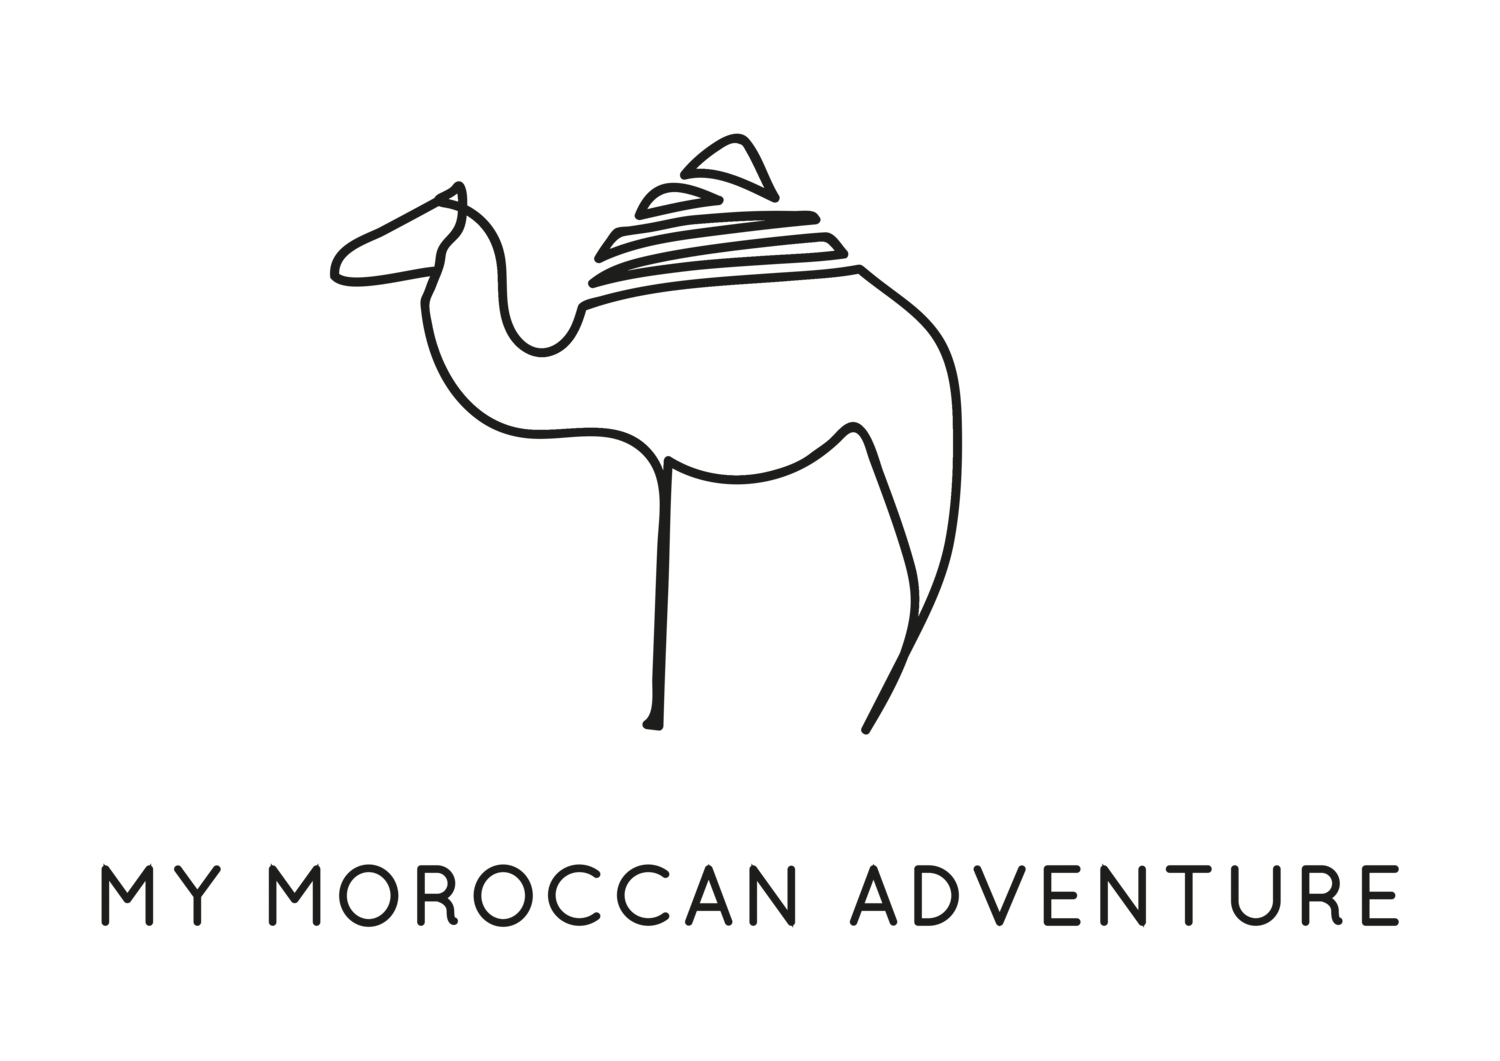 My Moroccan Adventure